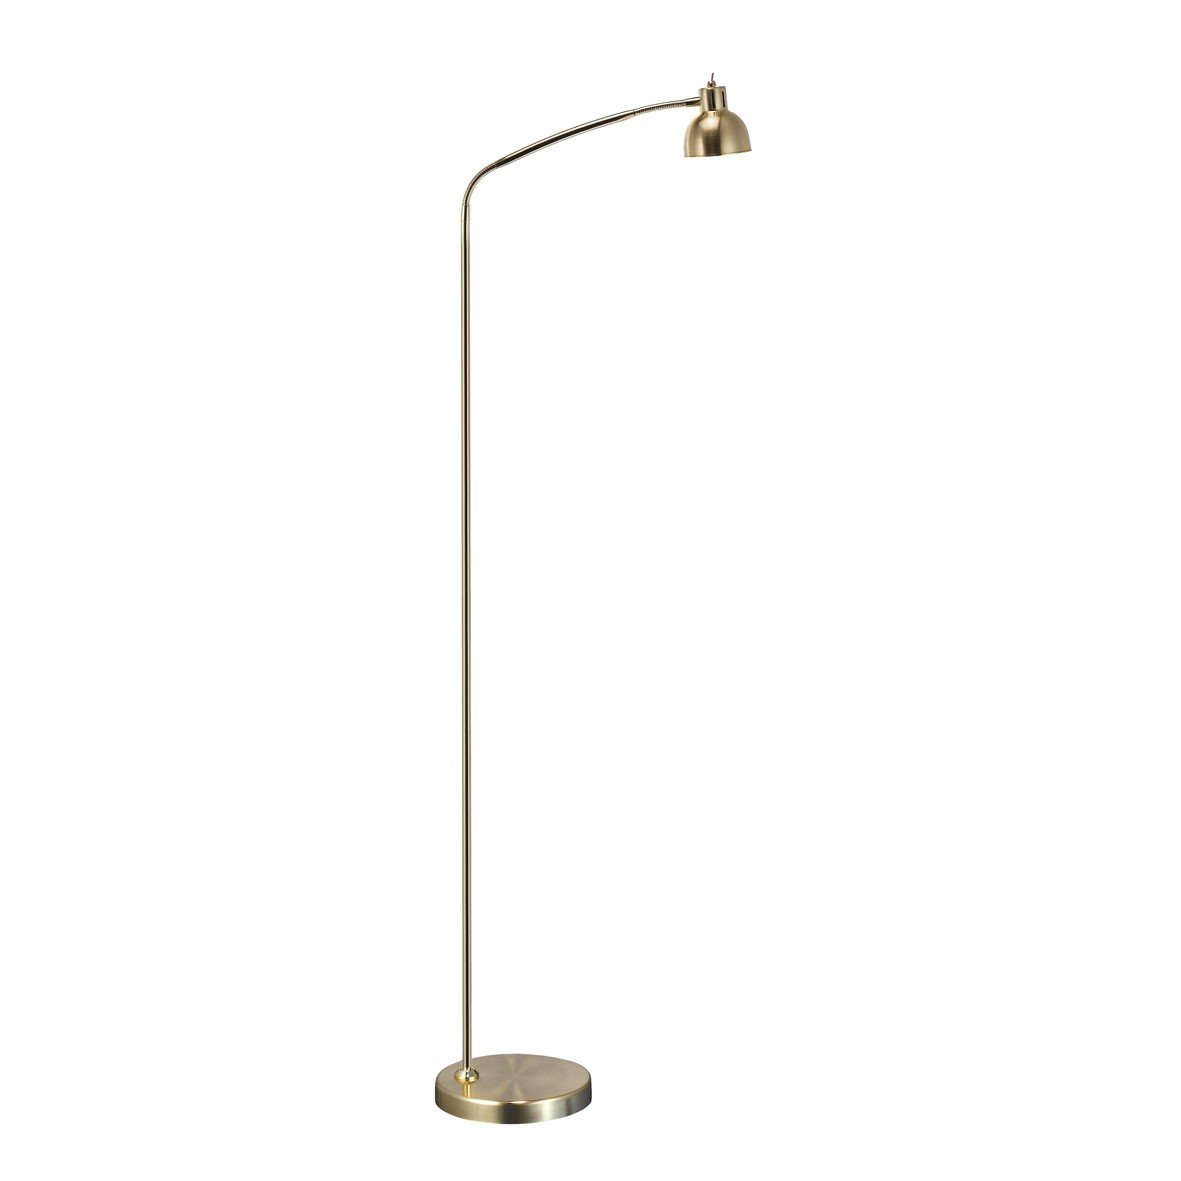 led stehlampe messing original giant brass led stehleuchte best of led stehlampe messing. Black Bedroom Furniture Sets. Home Design Ideas